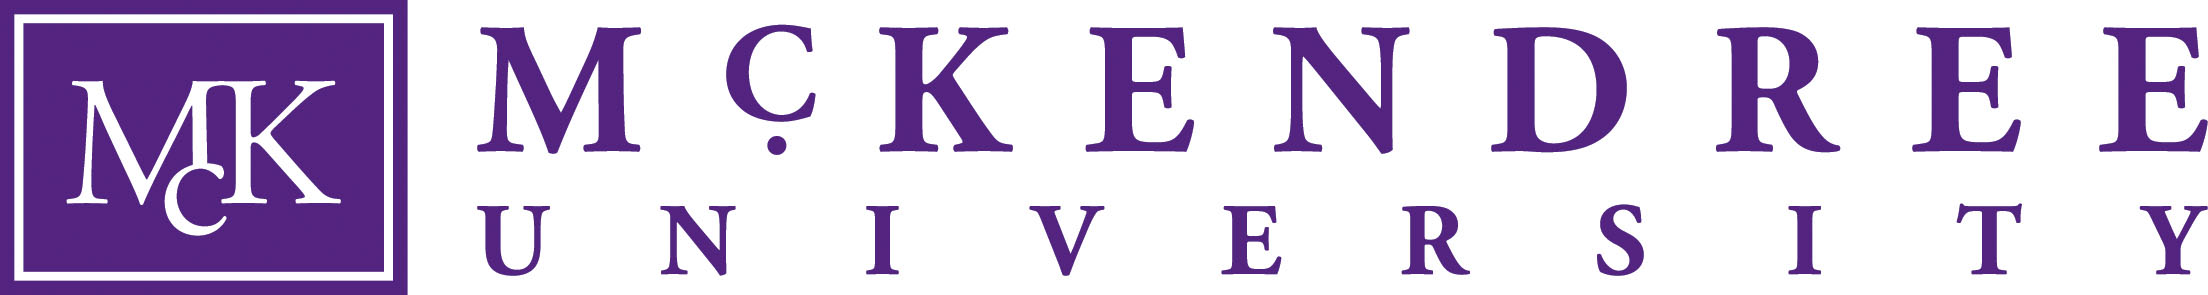 Mckendree primary logo